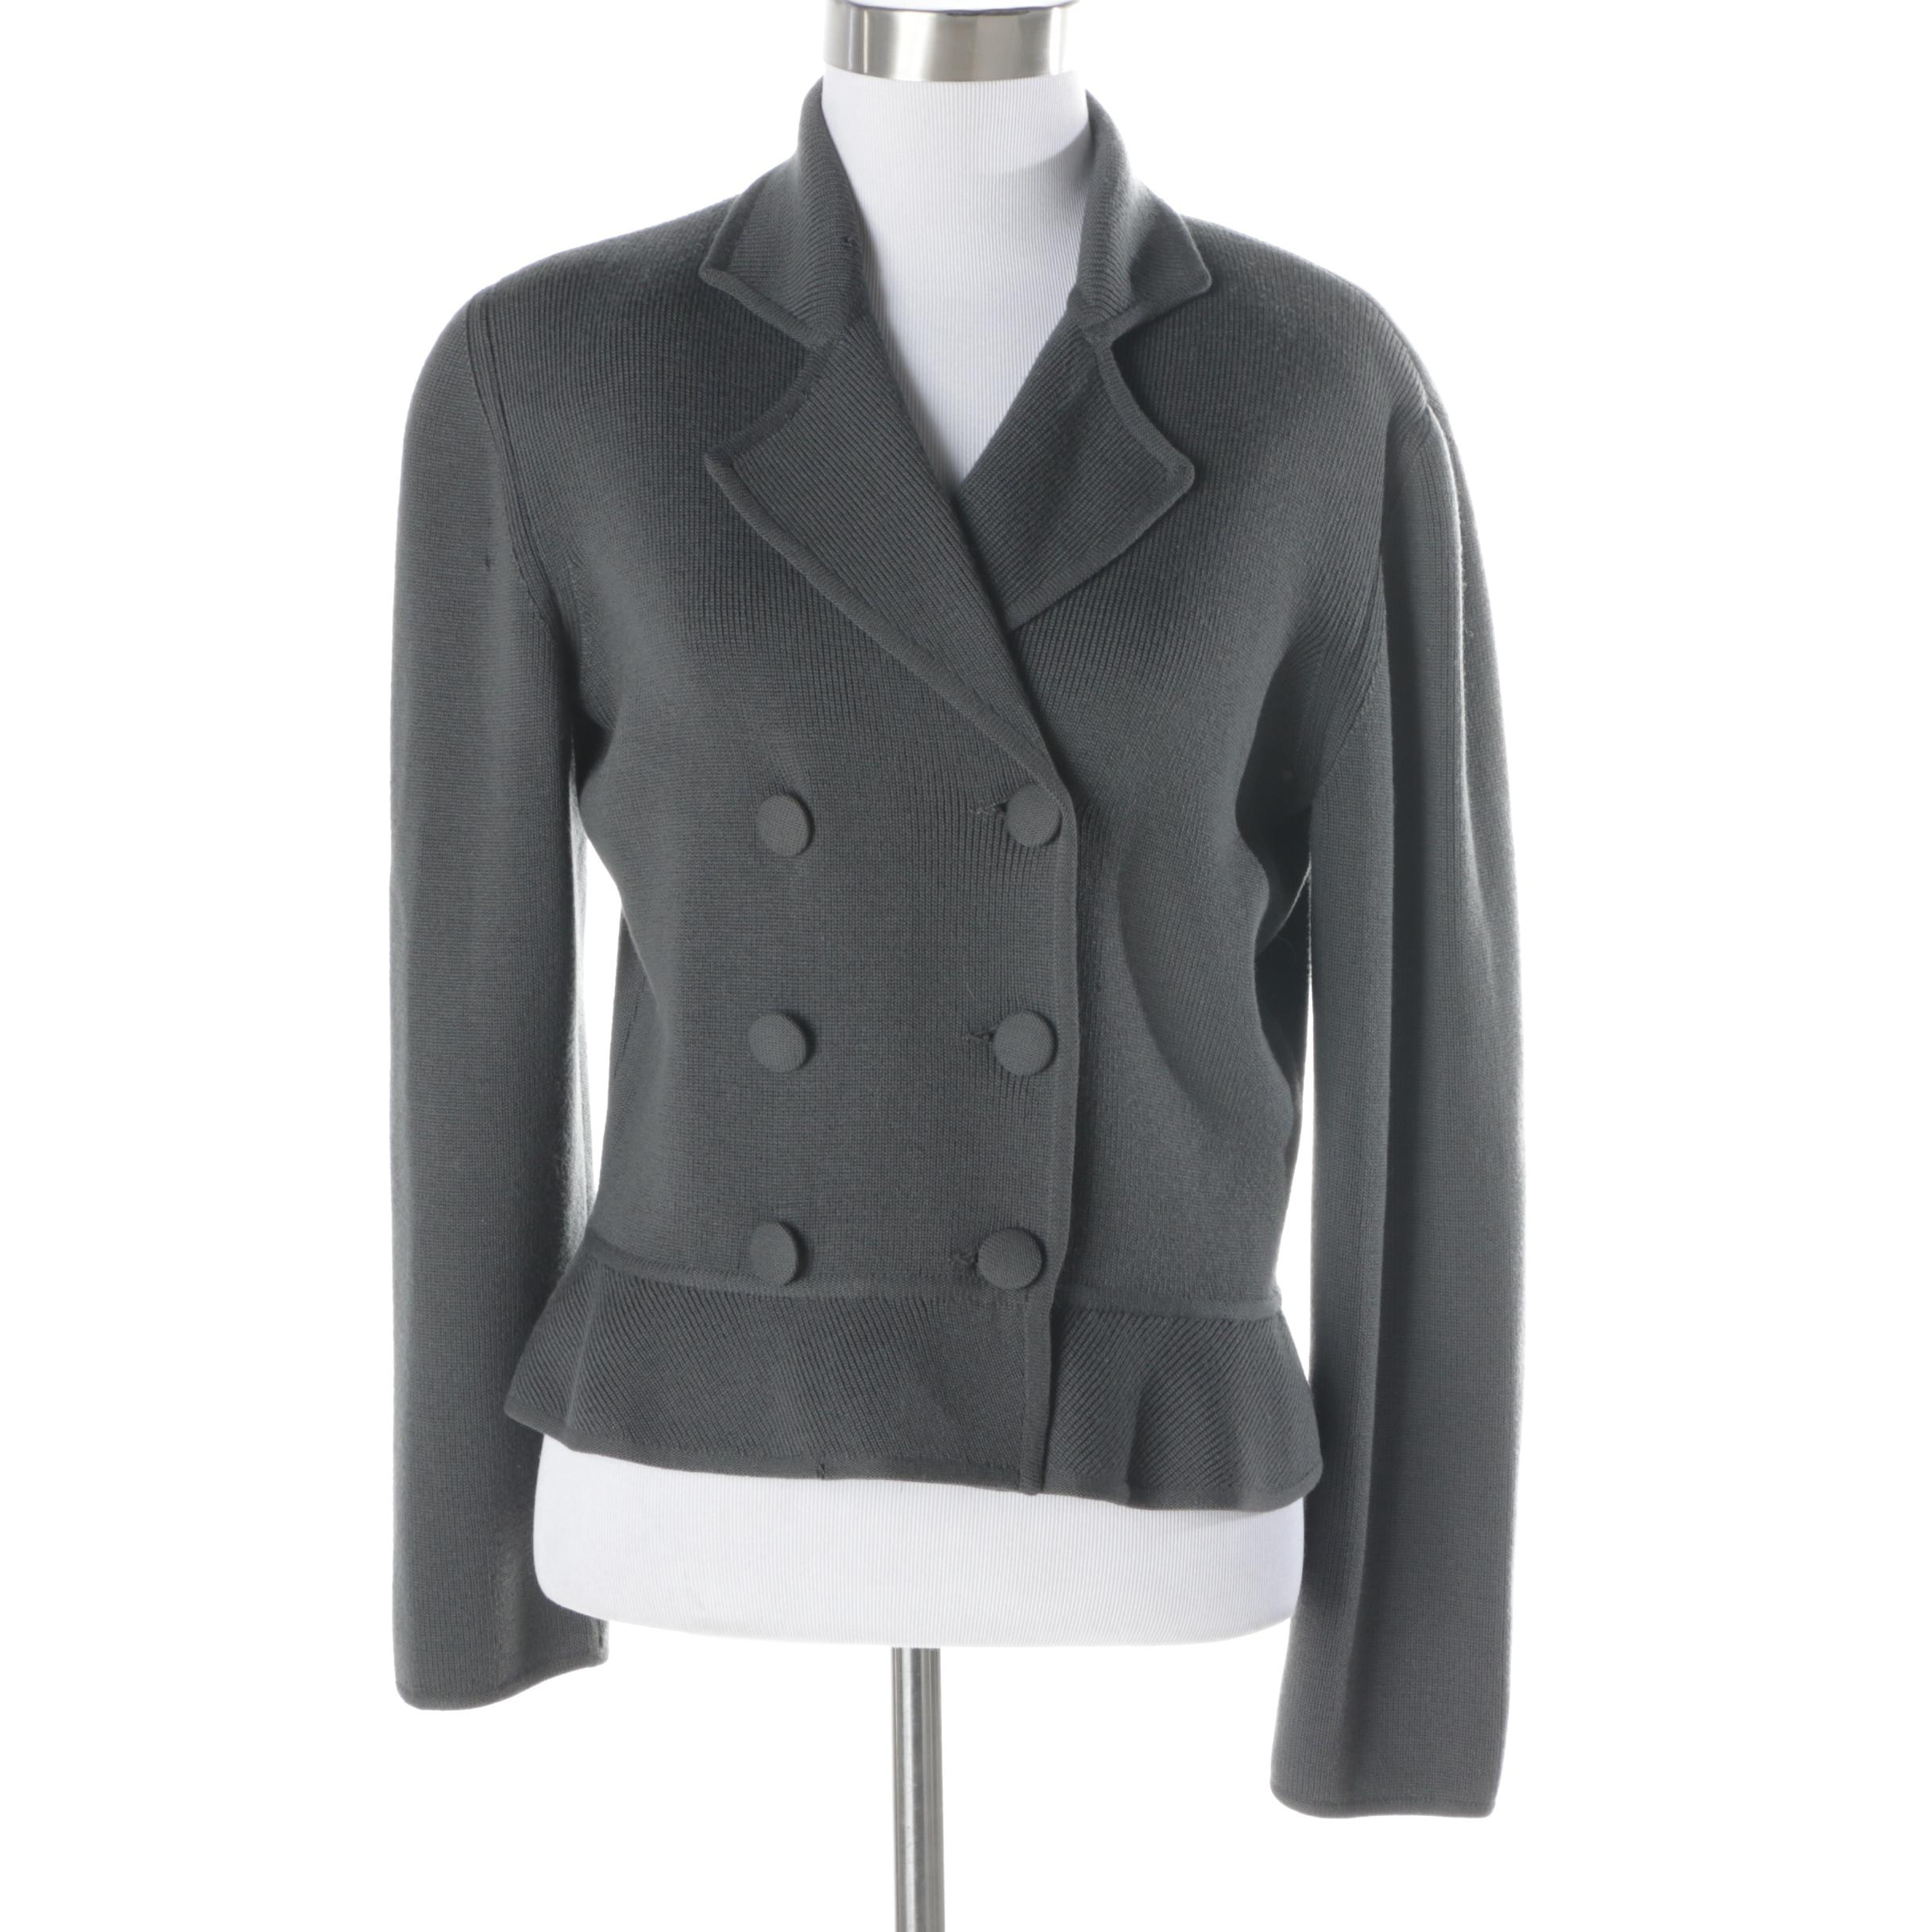 Women S Giorgio Armani Grey Wool Suit Jacket Ebth